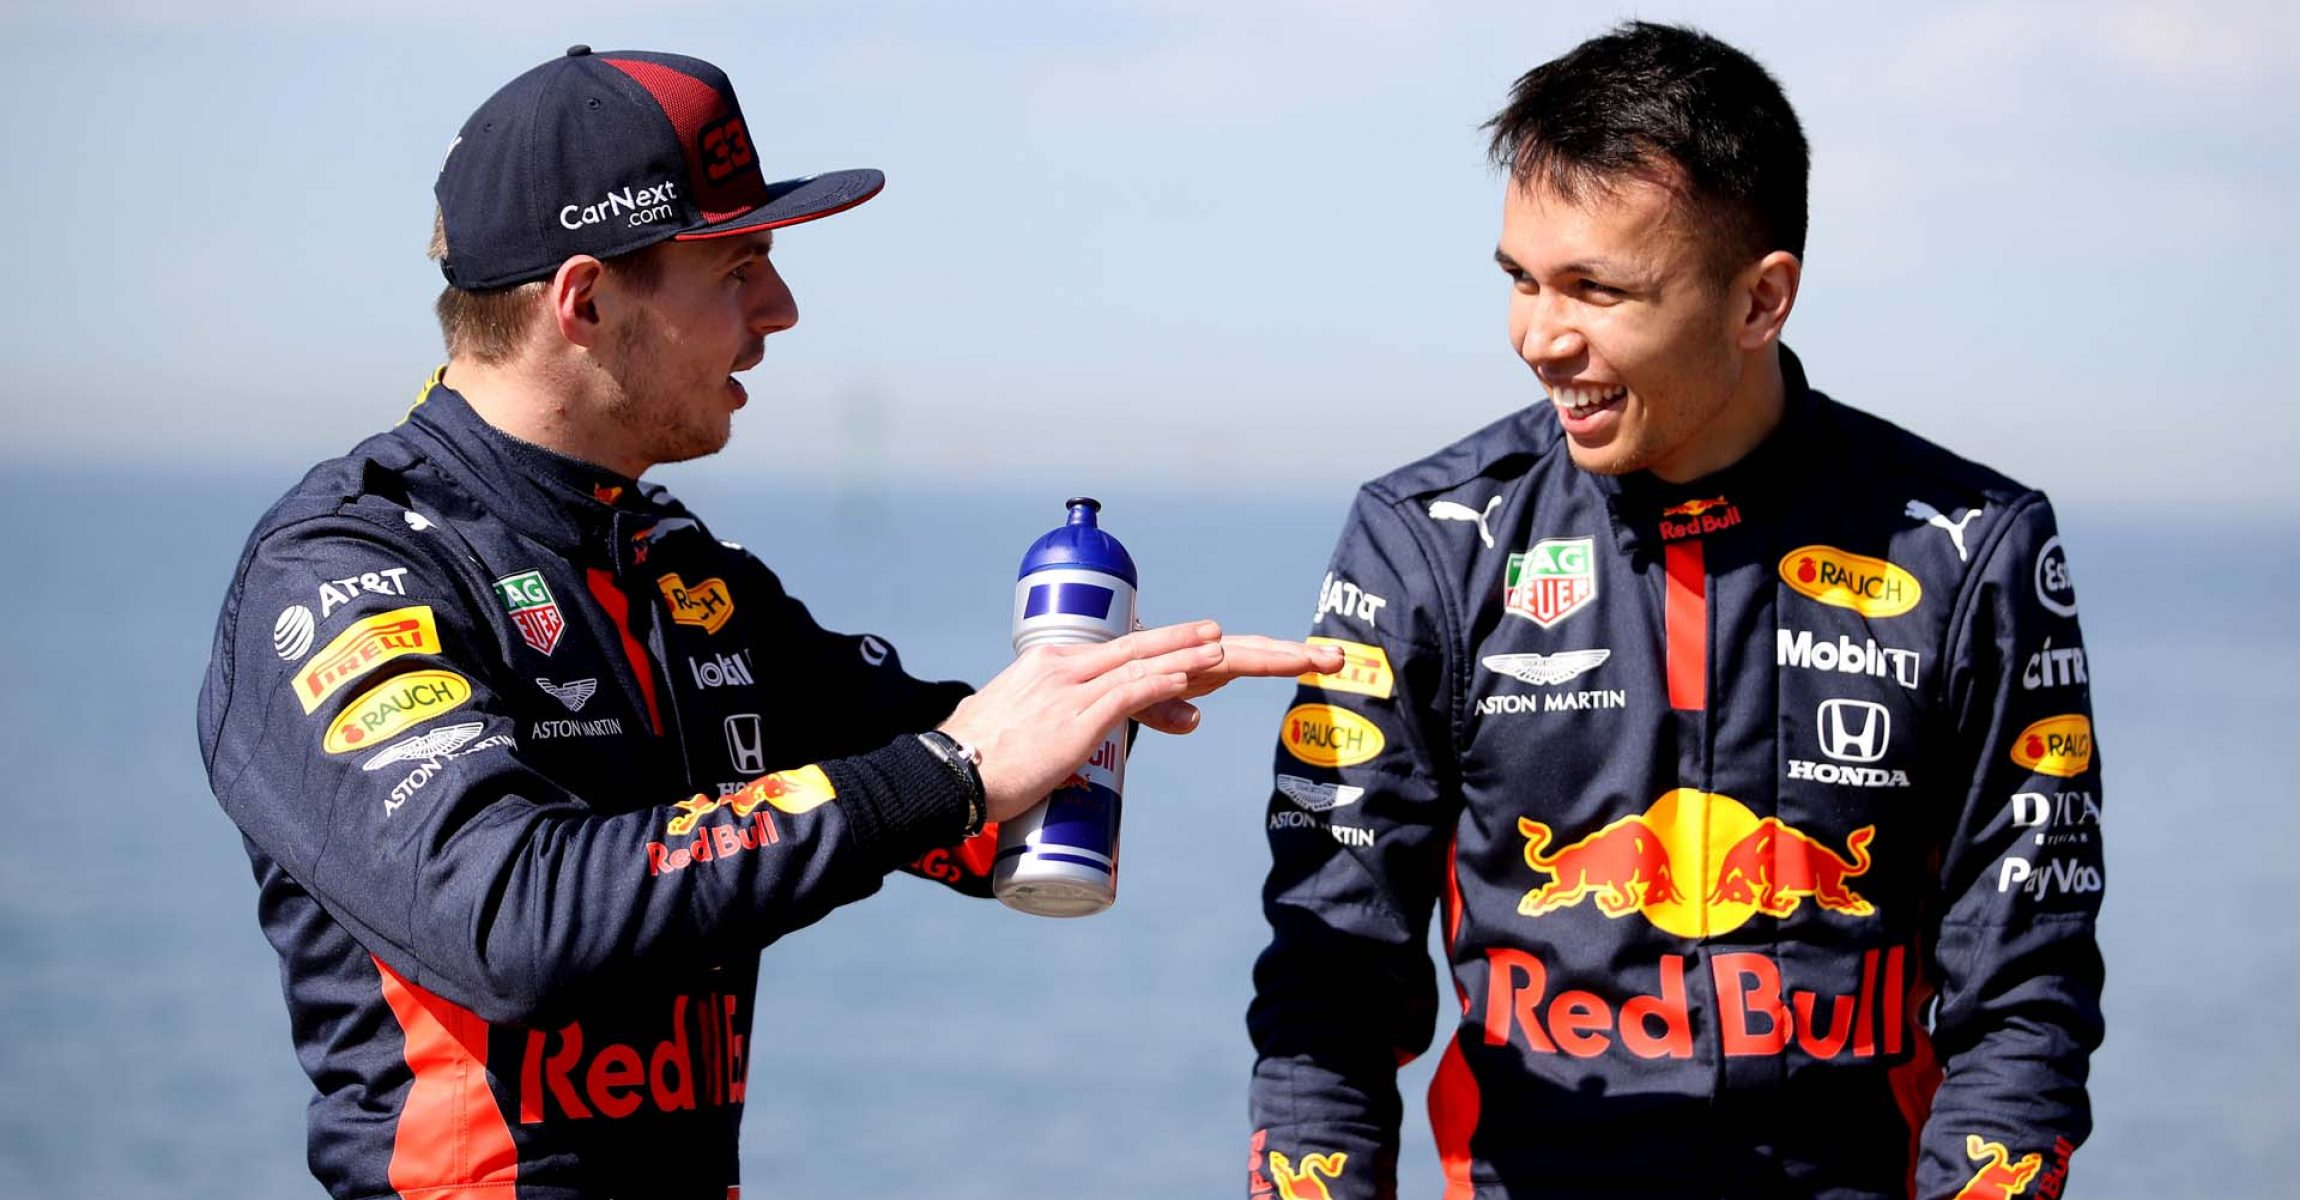 MELBOURNE, AUSTRALIA - MARCH 11: Max Verstappen of Netherlands and Red Bull Racing and Alexander Albon of Thailand and Red Bull Racing speak during the Aston Martin Red Bull Racing Cooler Runnings event at Station Pier, Port Melbourne ahead of the F1 Grand Prix of Australia on March 11, 2020 in Melbourne, Australia. (Photo by Mark Thompson/Getty Images) // Getty Images / Red Bull Content Pool // AP-23C65P9S12111 // Usage for editorial use only //